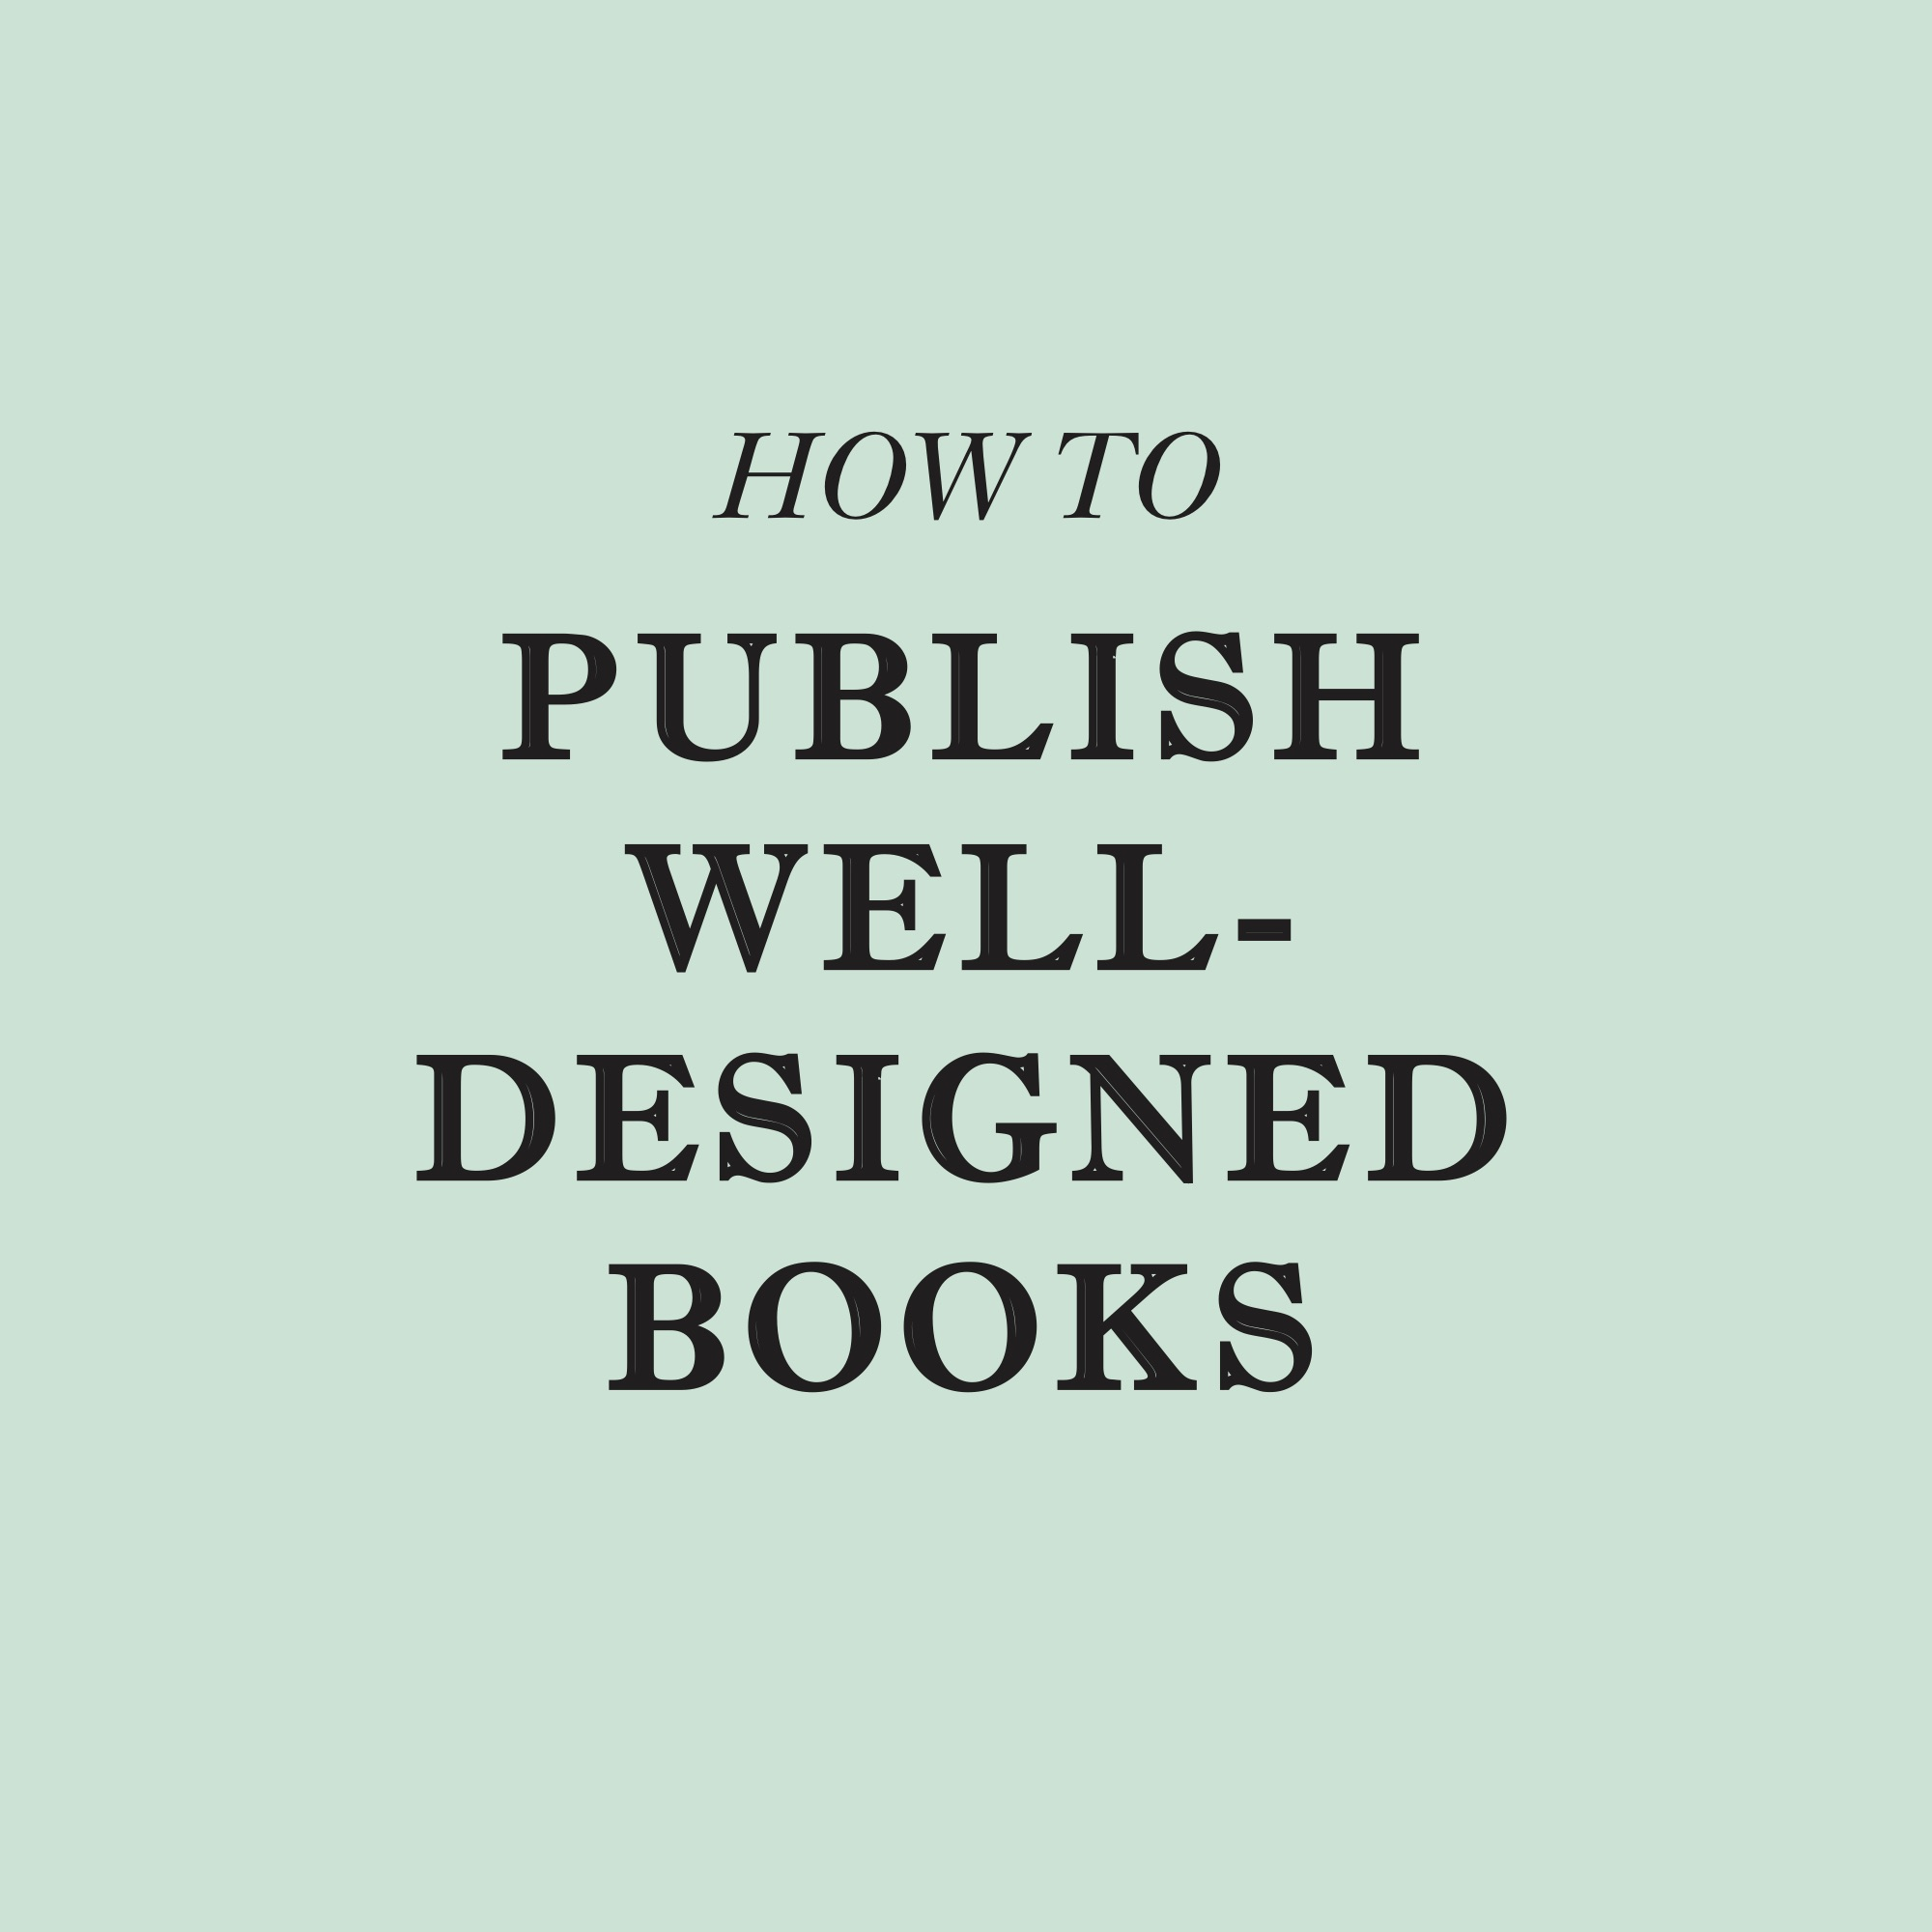 WellDesignedBooks_Layout 1.jpg